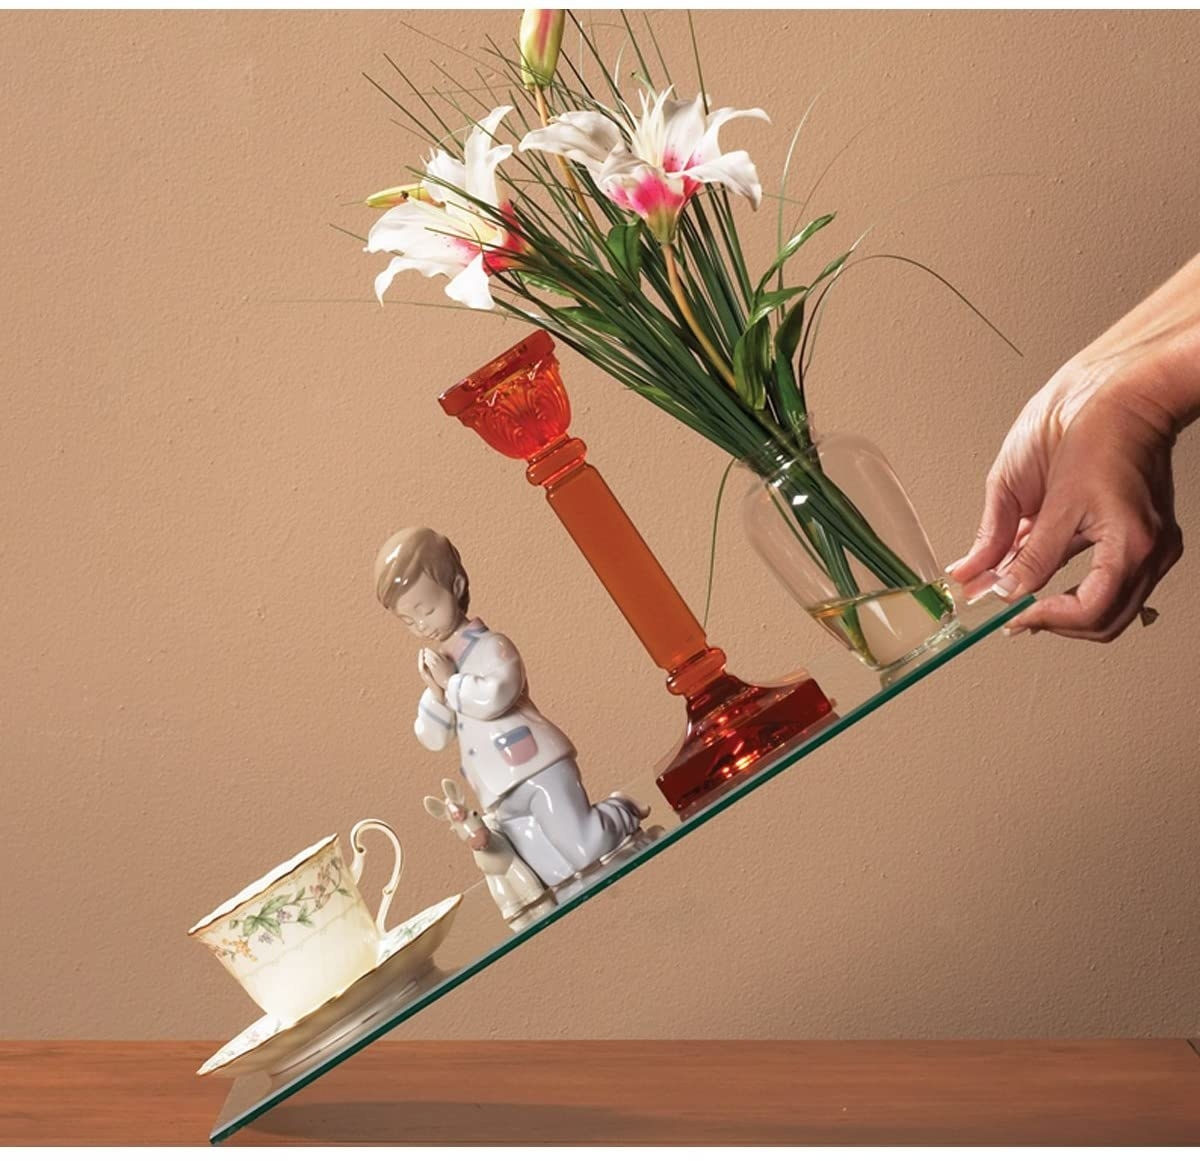 person holding a piece of glass at an angle that has a teacup, a porcelain doll, a candle holder, and a vase all secured so they don't fall